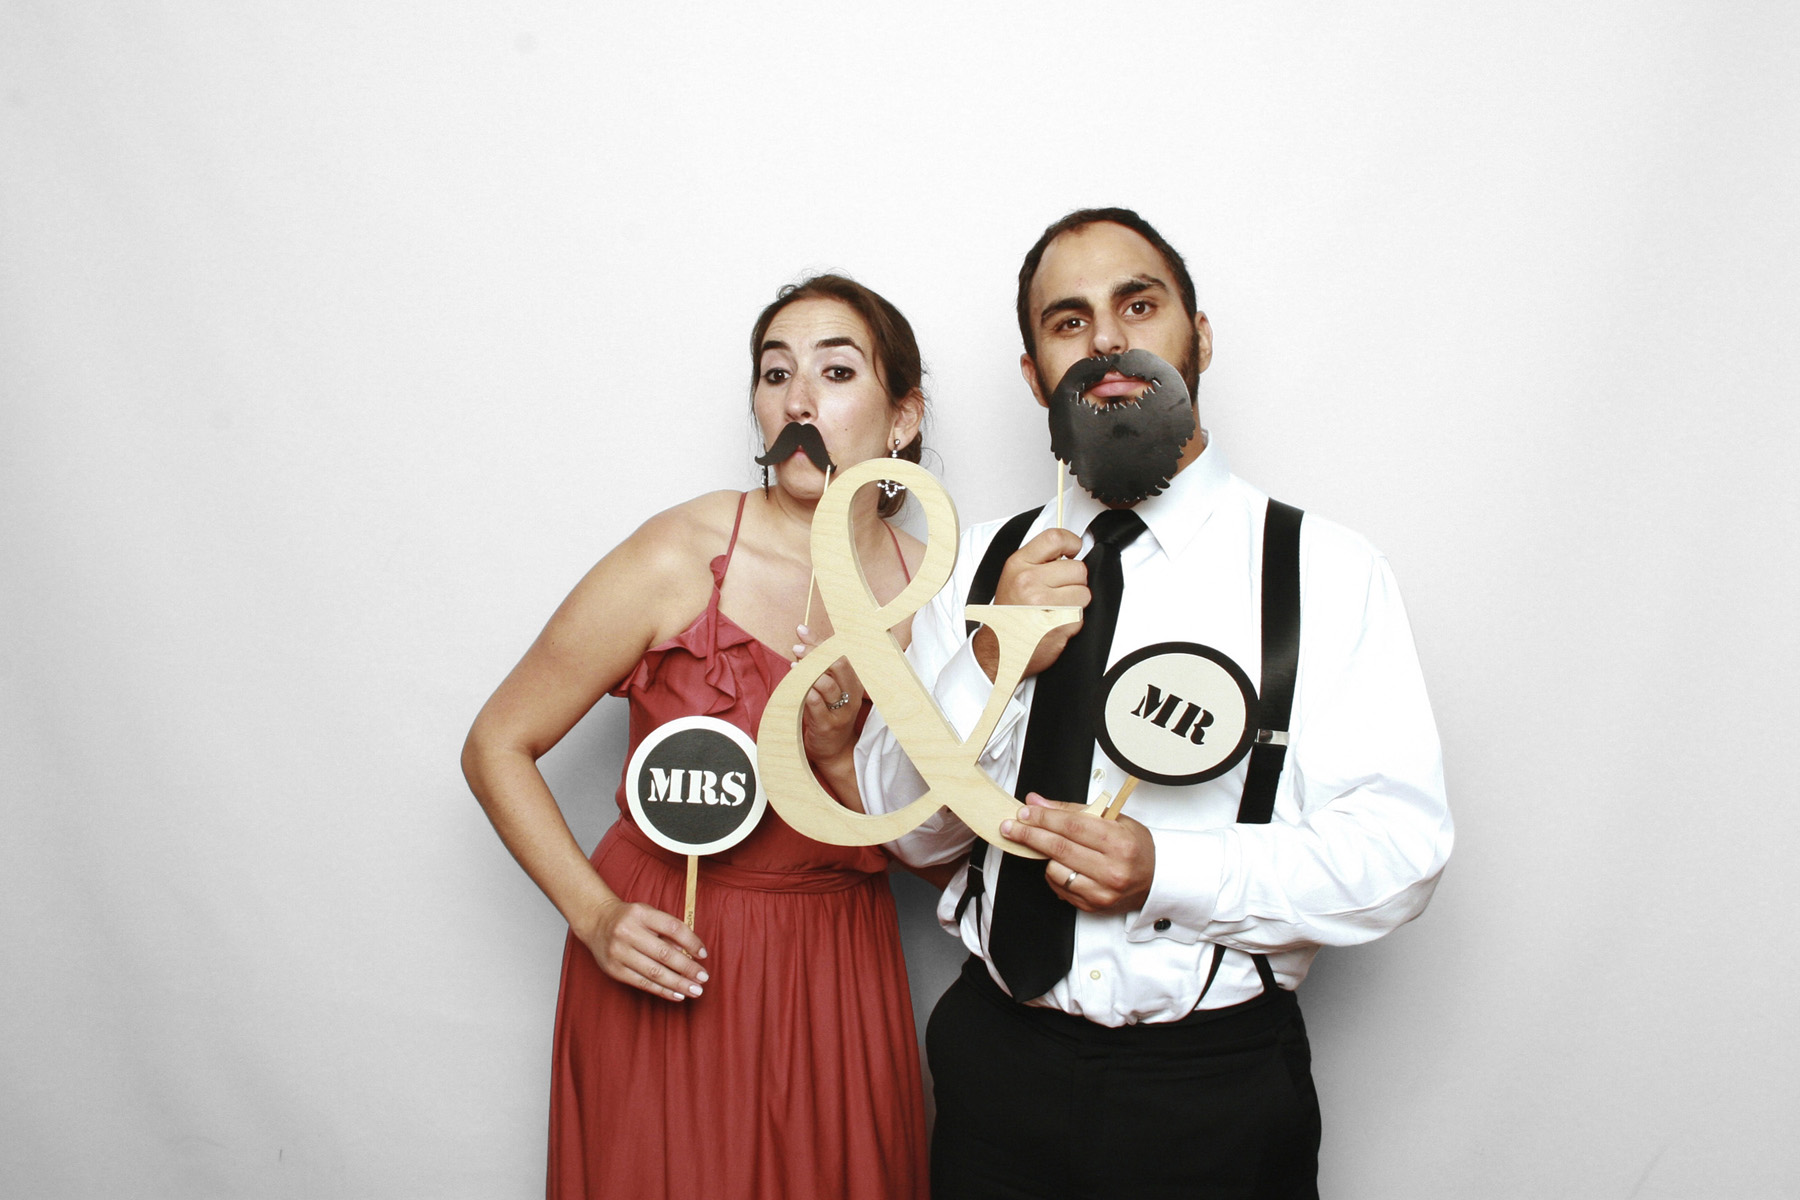 New York City Photo Booth at Chelsea Piers featured couple with stick props